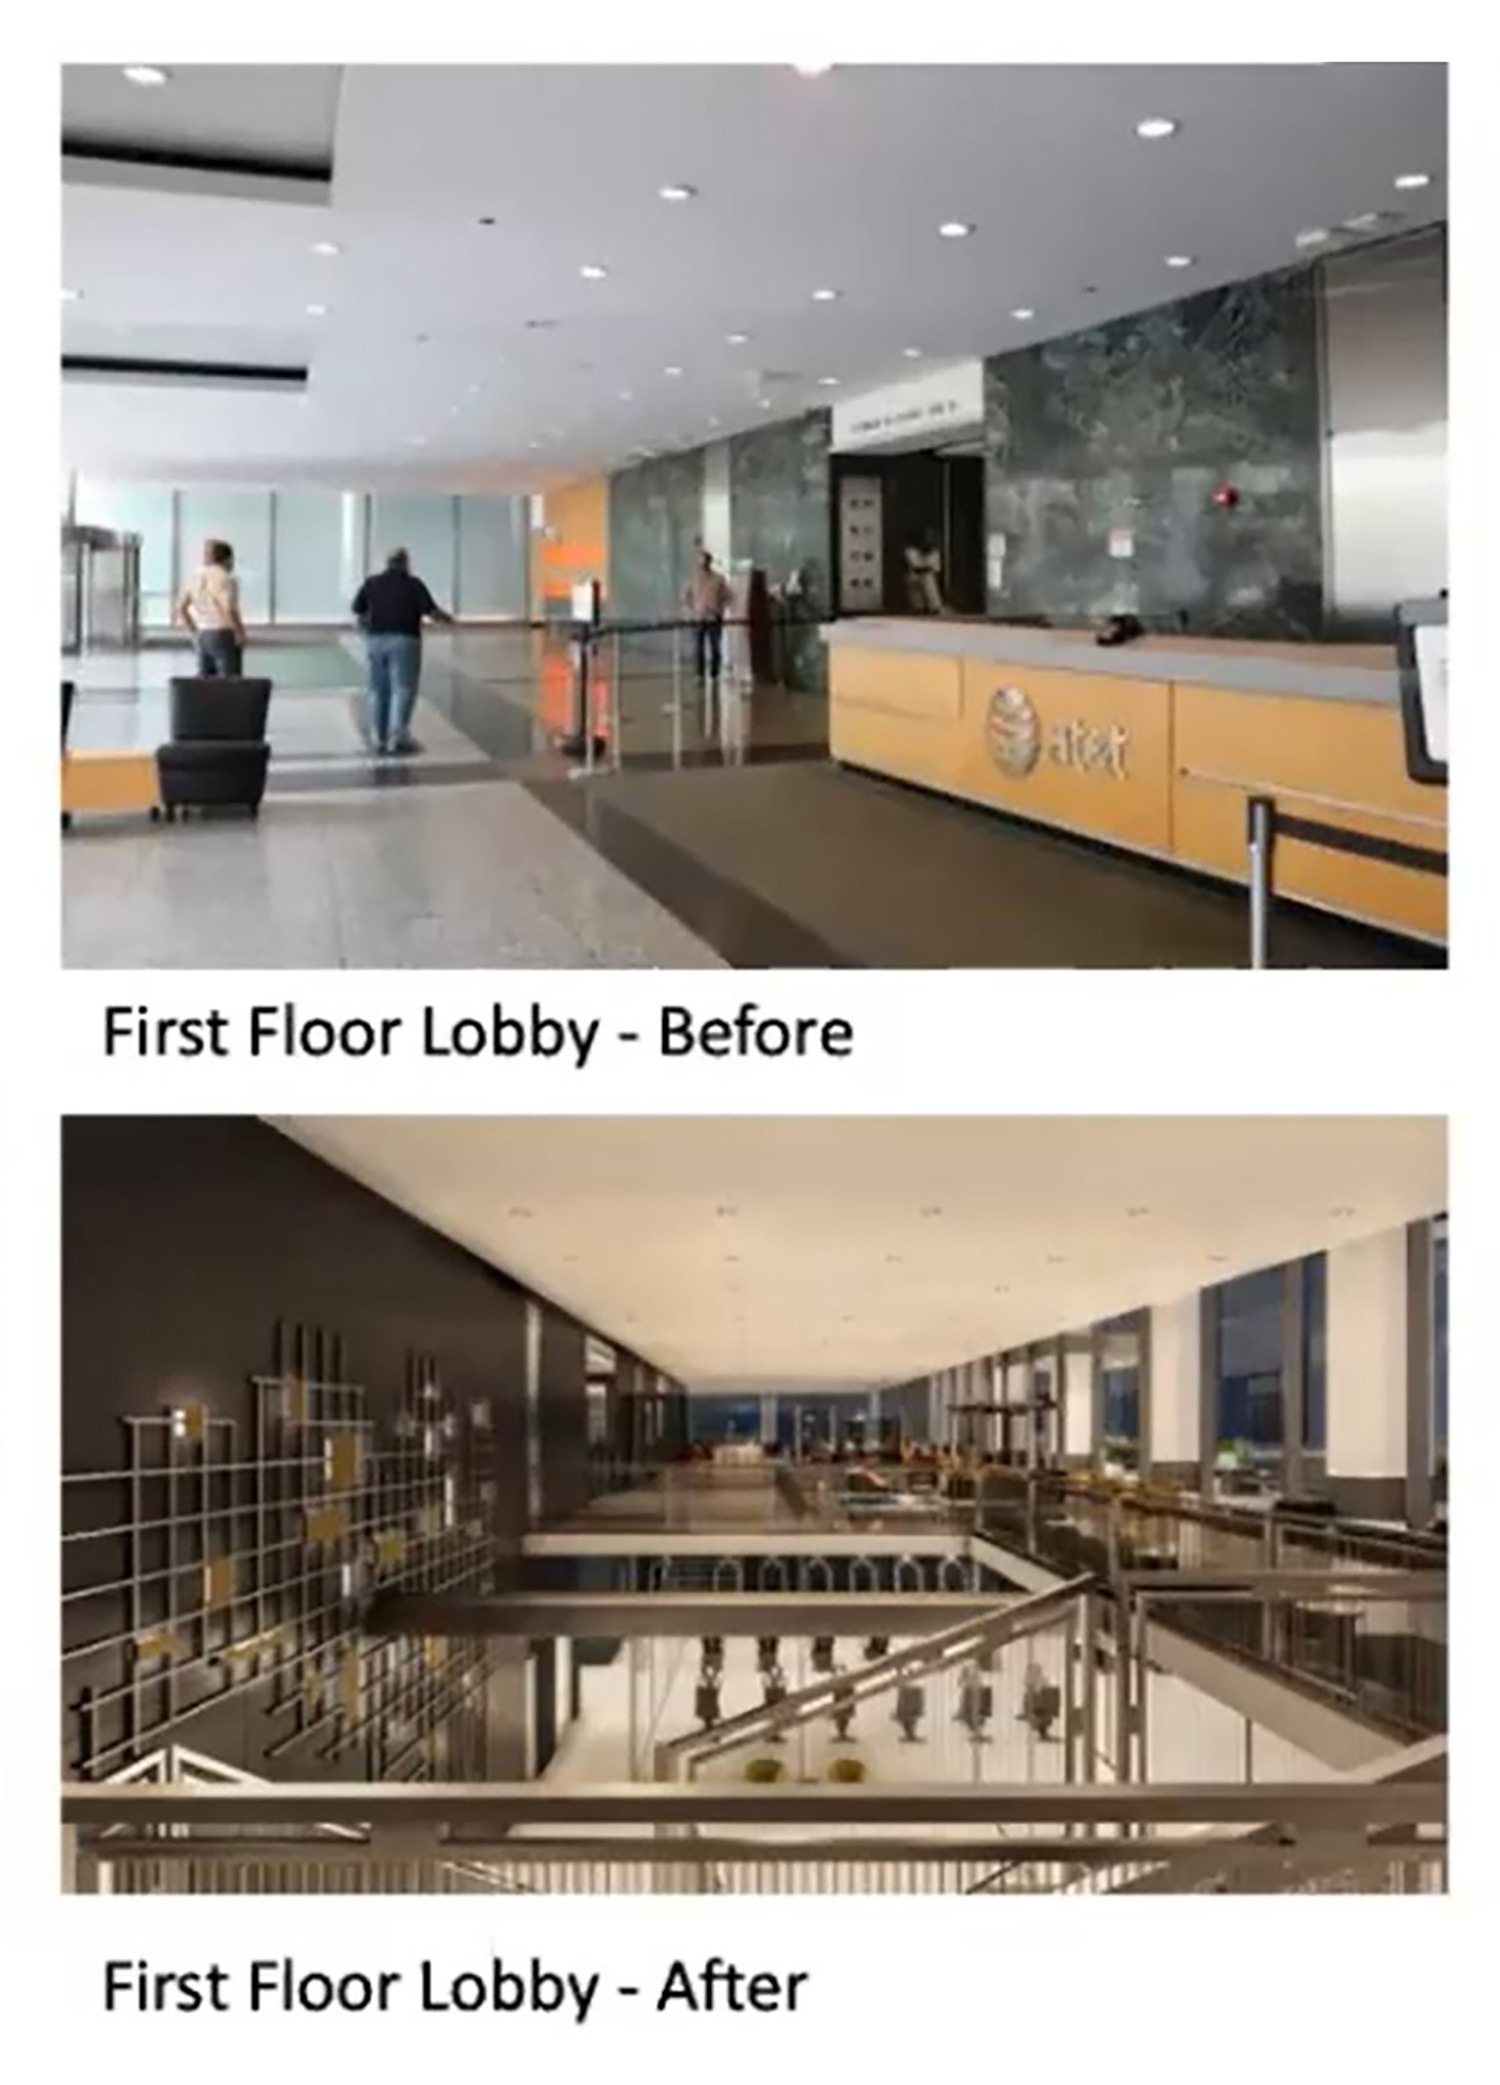 Illinois Bell Building Lobby Comparison. Images by Developer